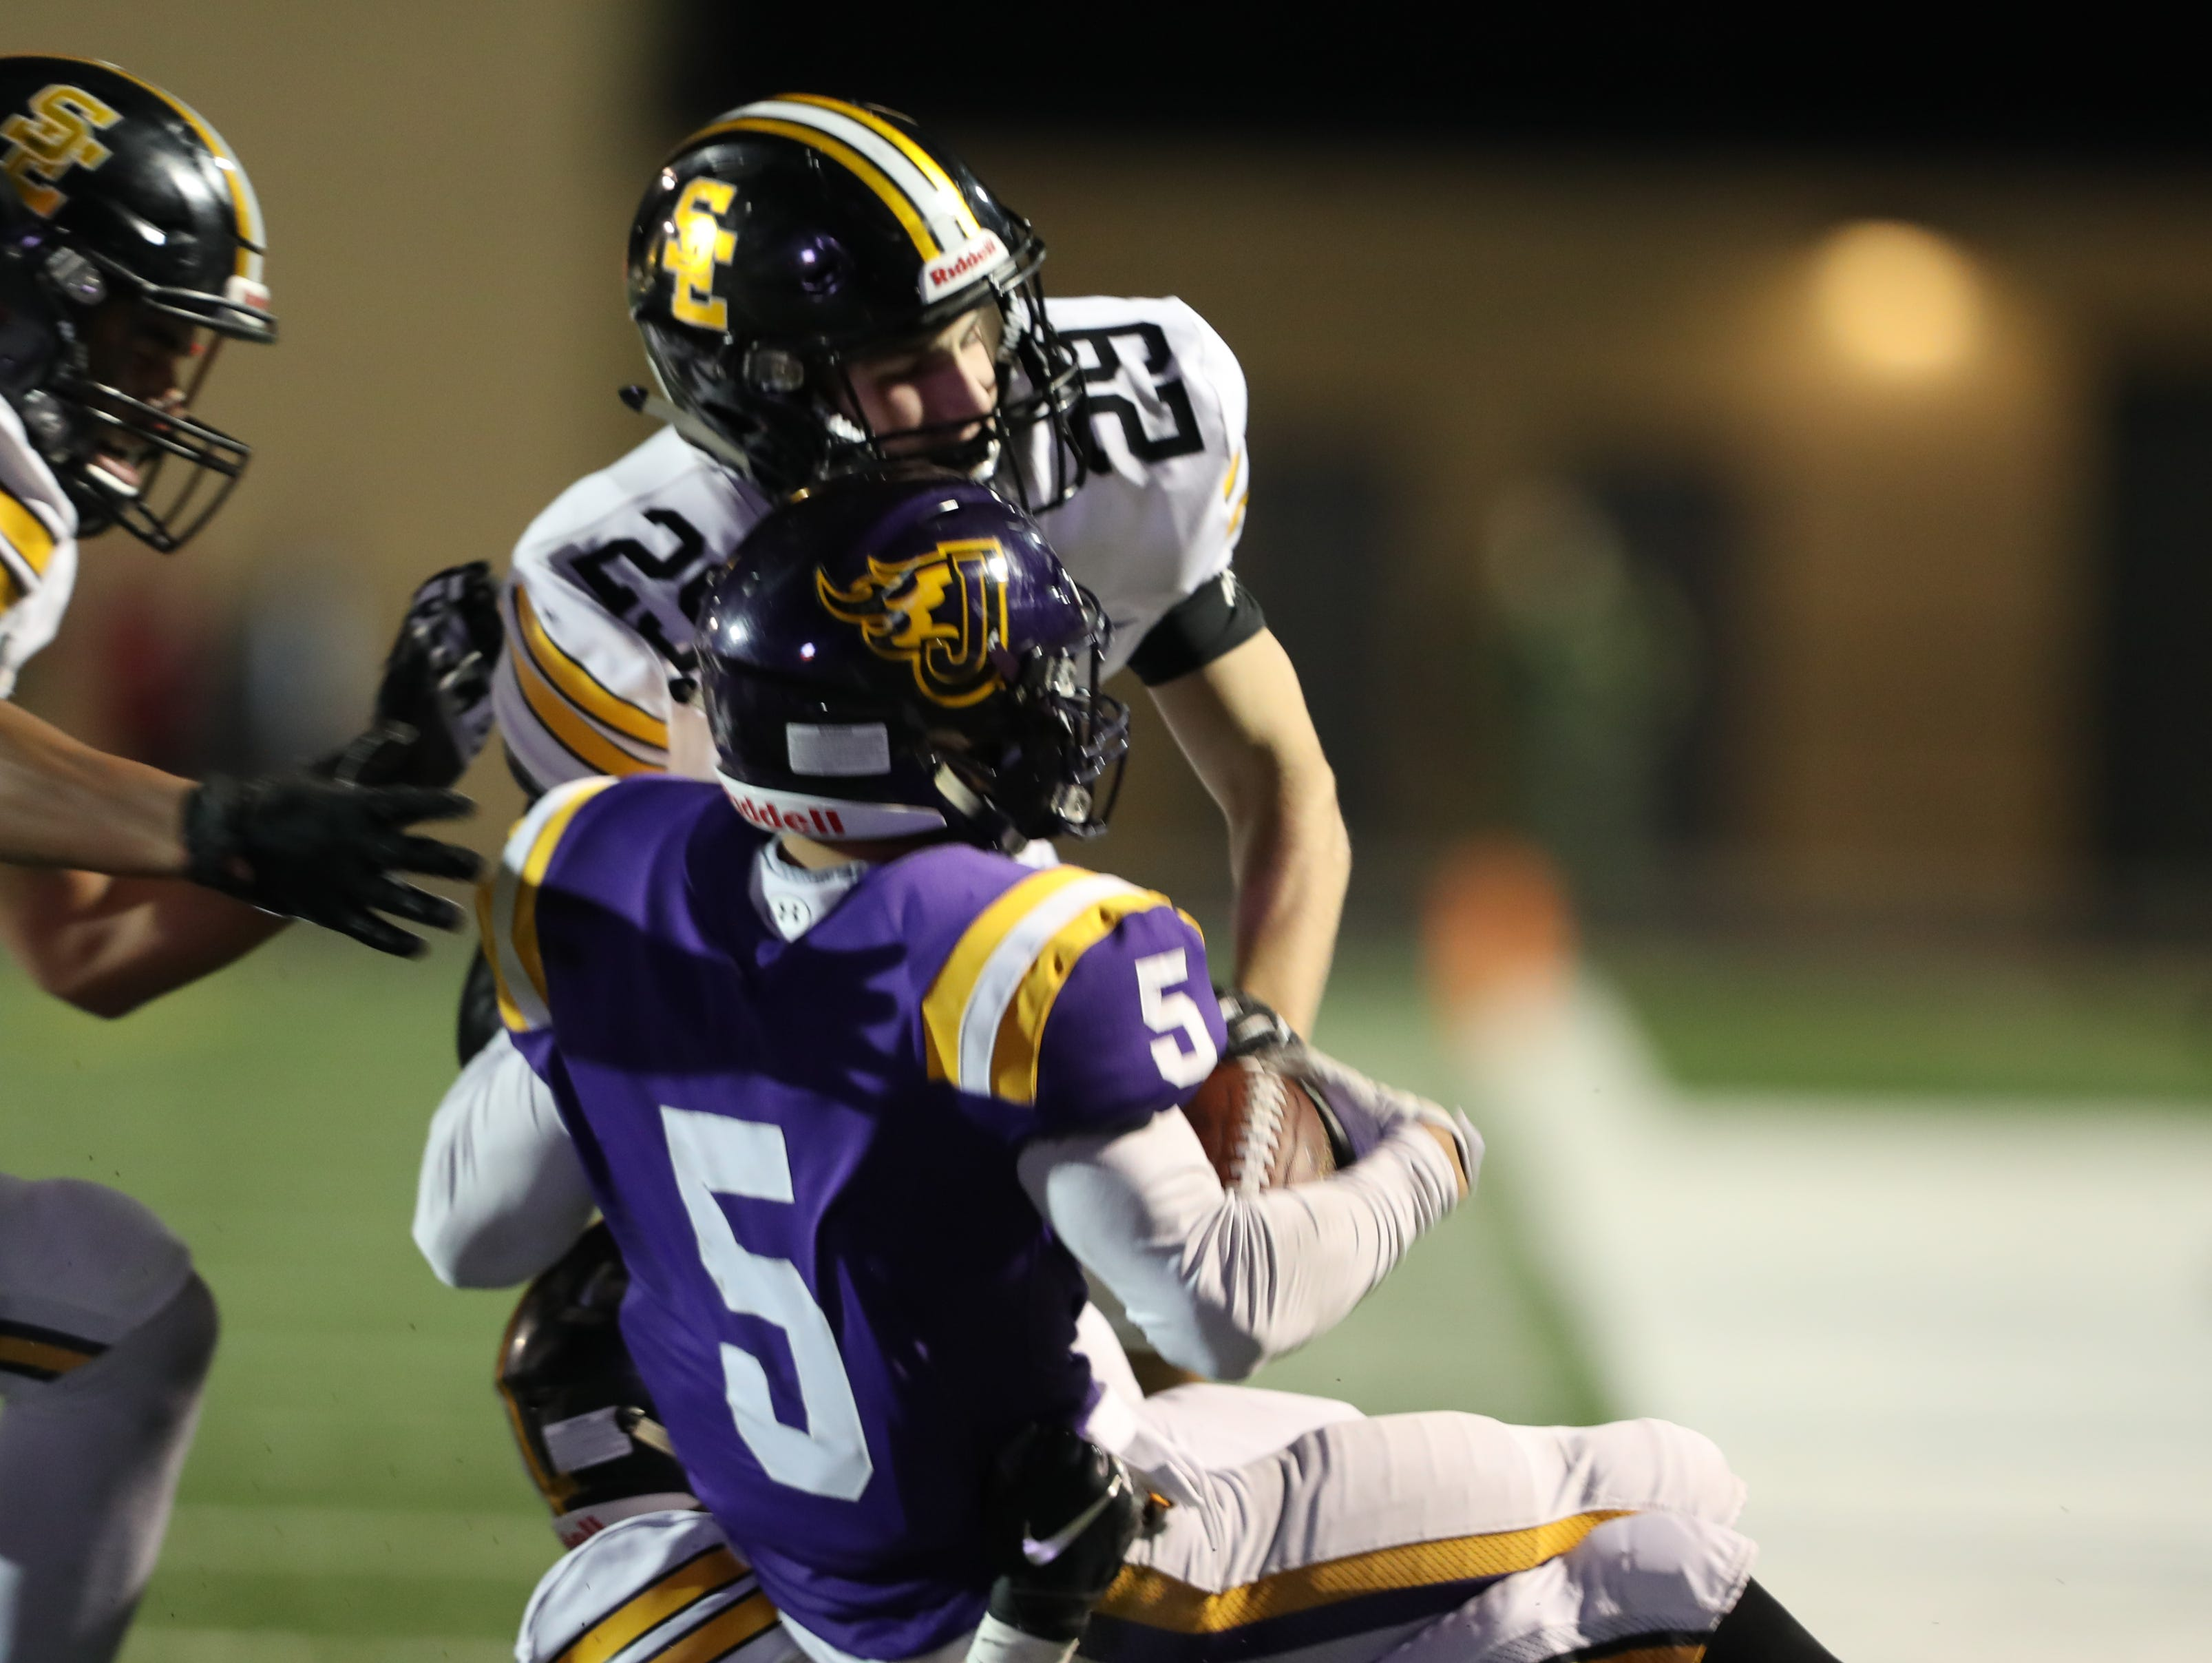 Nov 2, 2018; Johnston, IA, USA; Southeast Polk Rams Daniel Hackbarth (29) tackles Johnston Dragons Anthony Coleman (5) at Johnston Stadium. The Rams beat the Dragons 21-7.